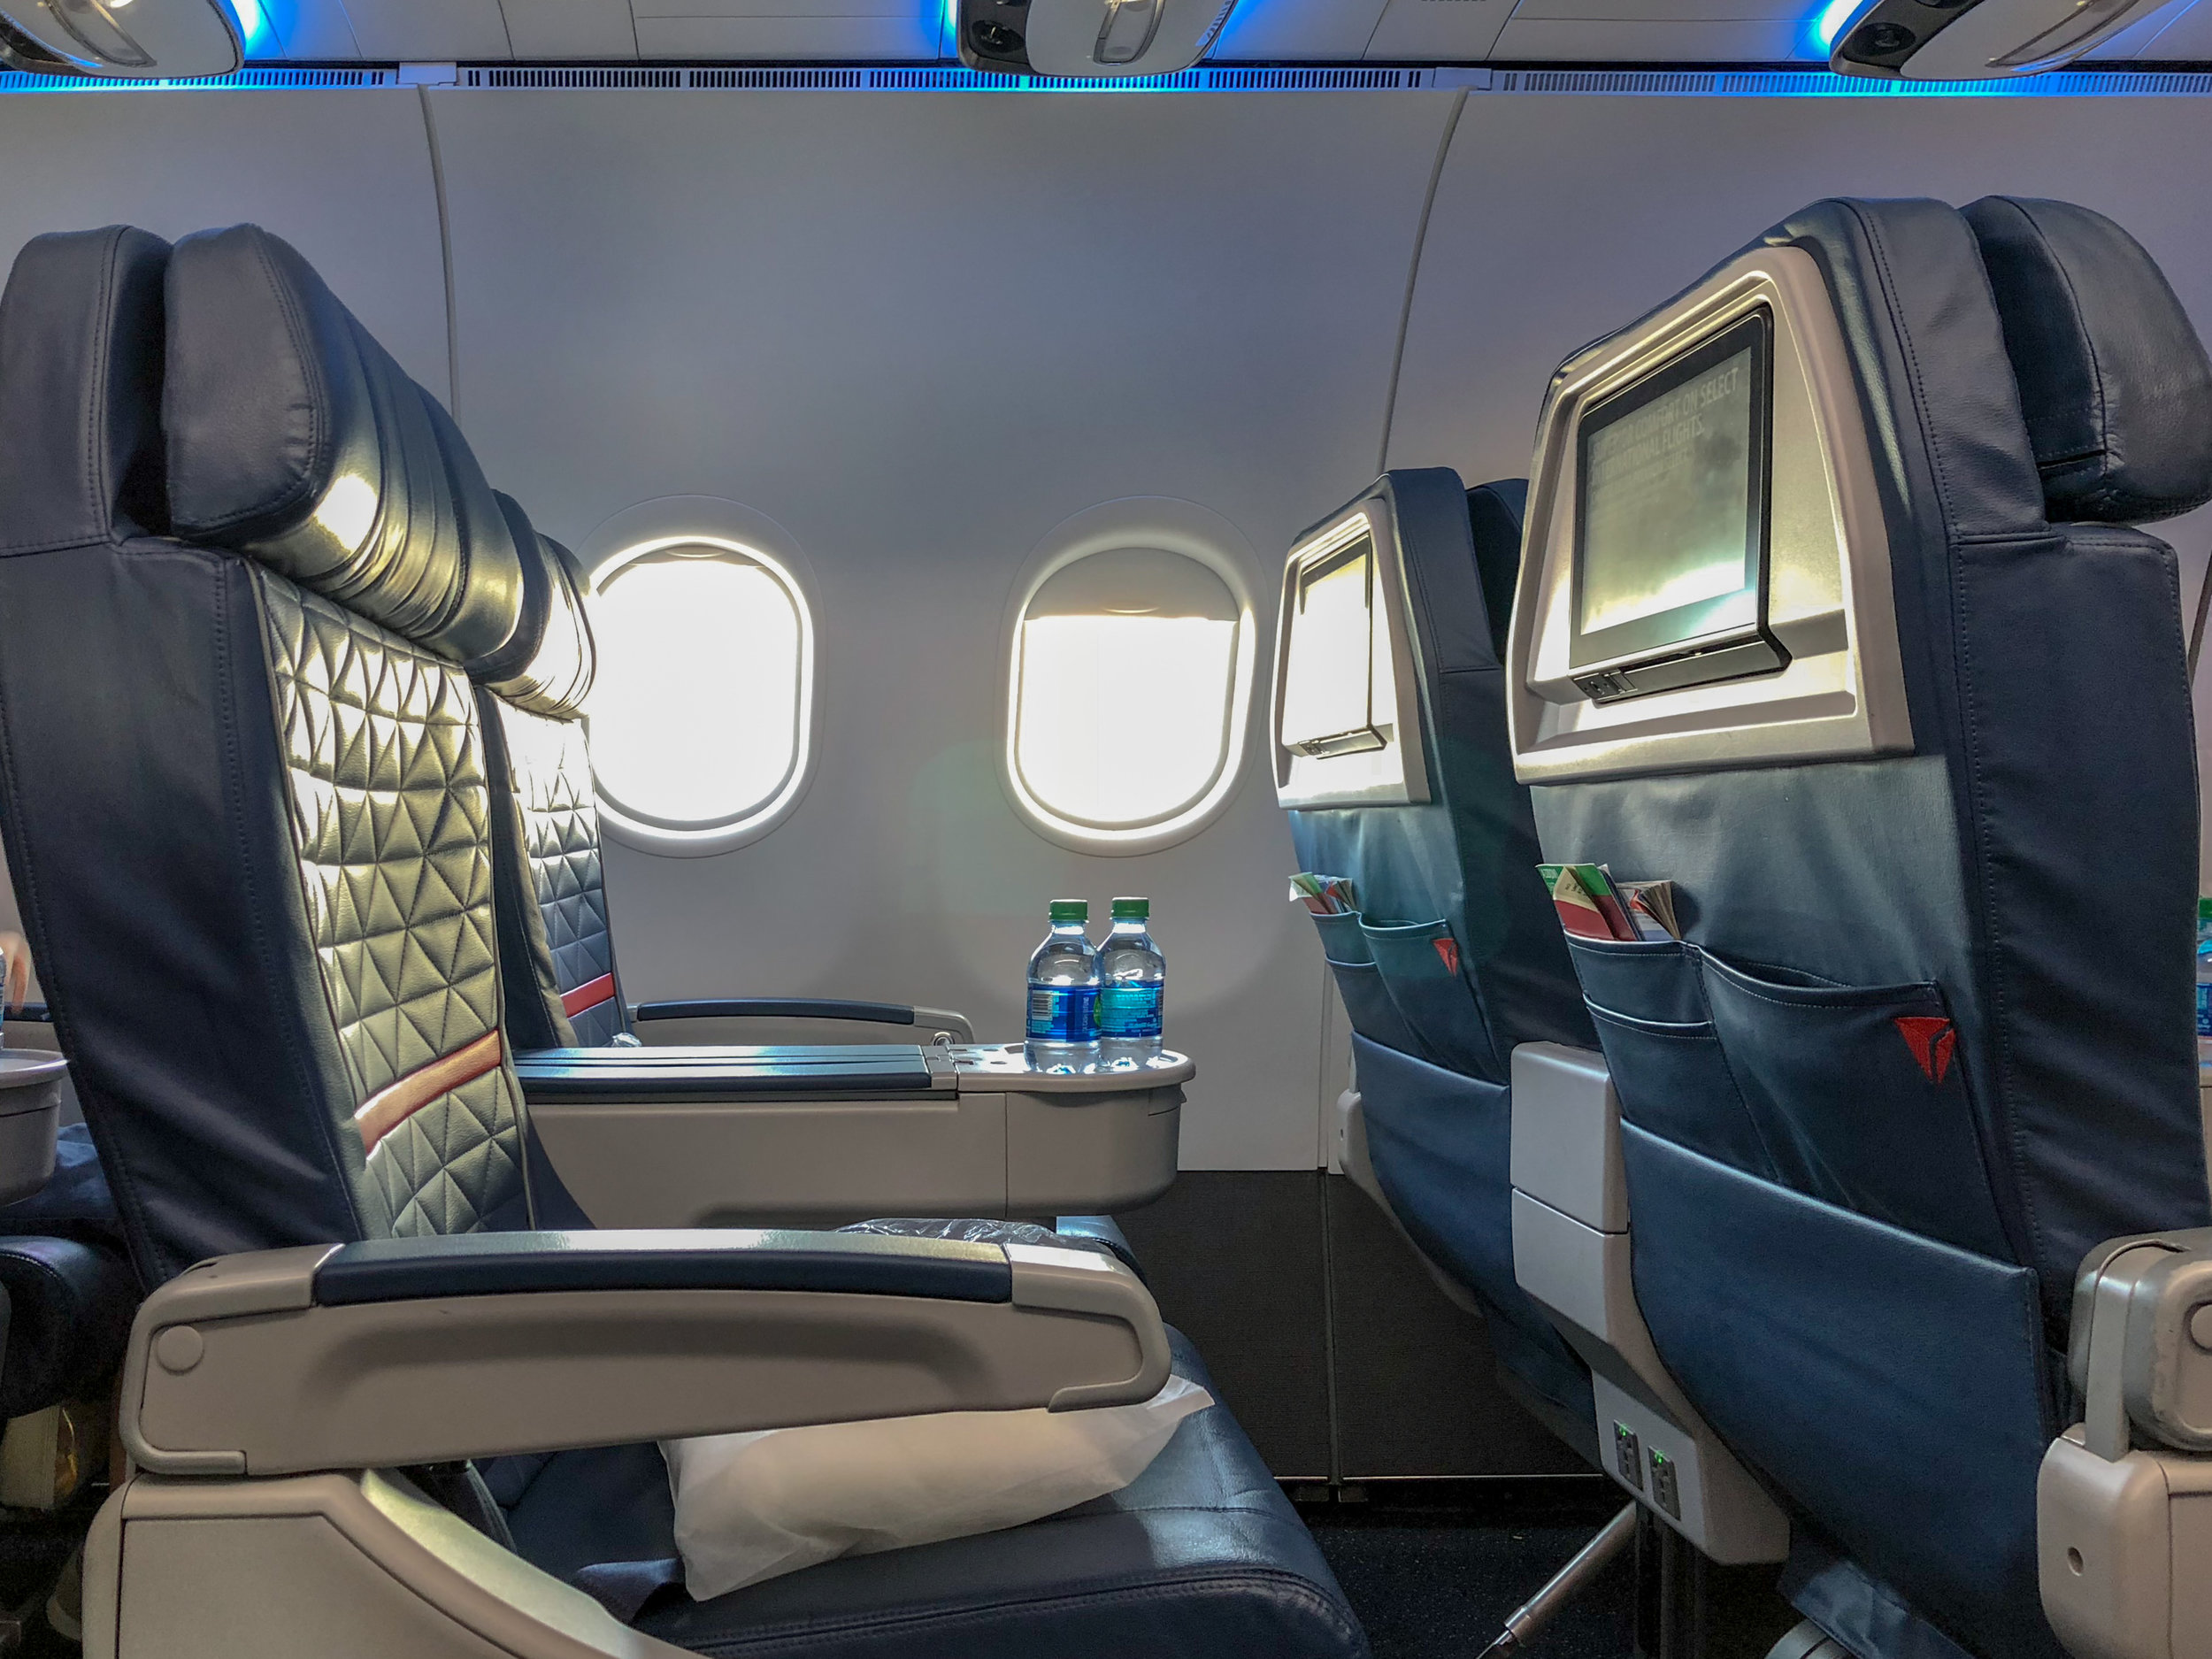 Delta Air Lines First Class - DL44 (MCO-JFK)